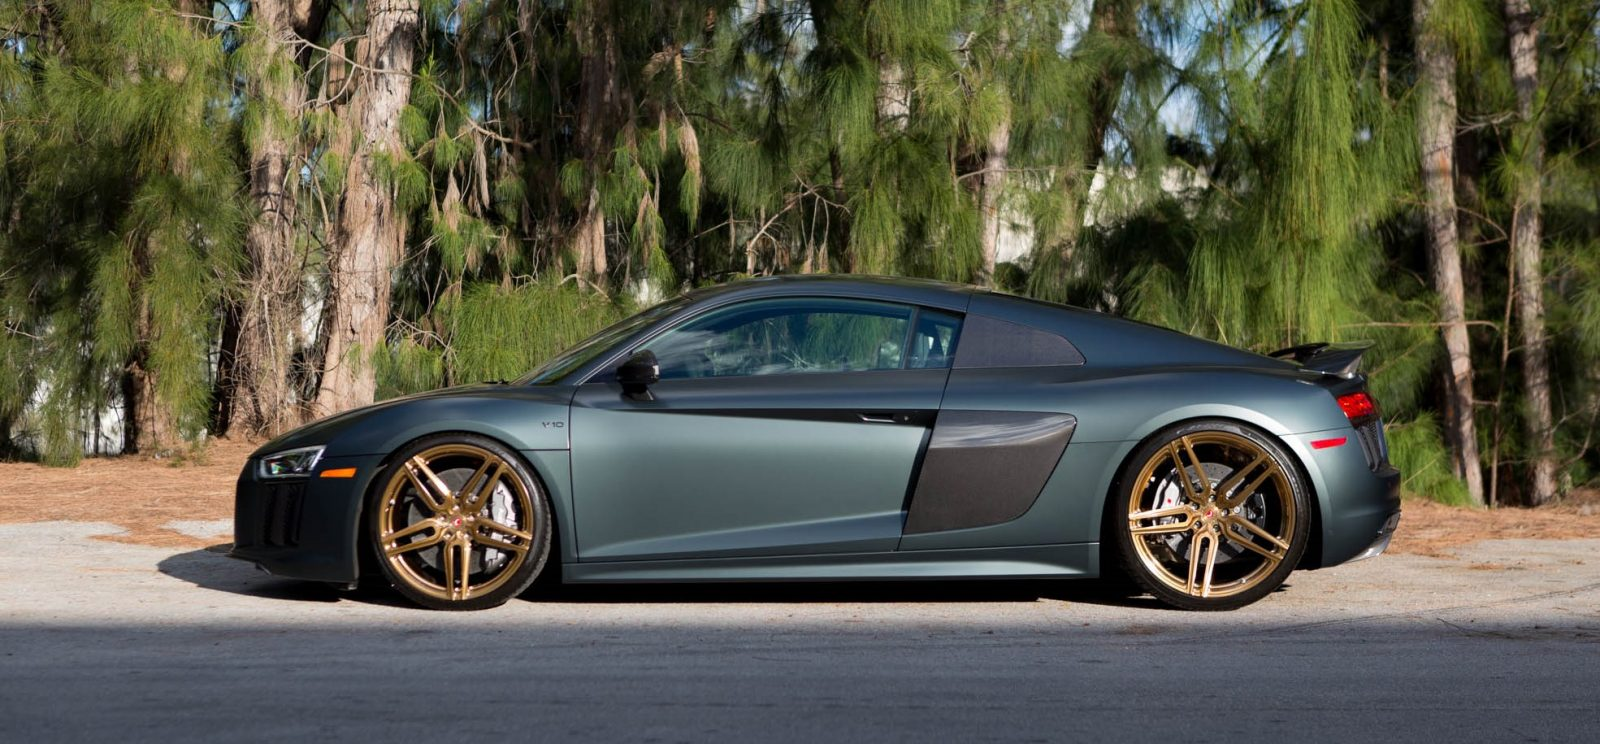 Audi R8 V10 Plus - HC-1 - For Sale -_32275552780_o